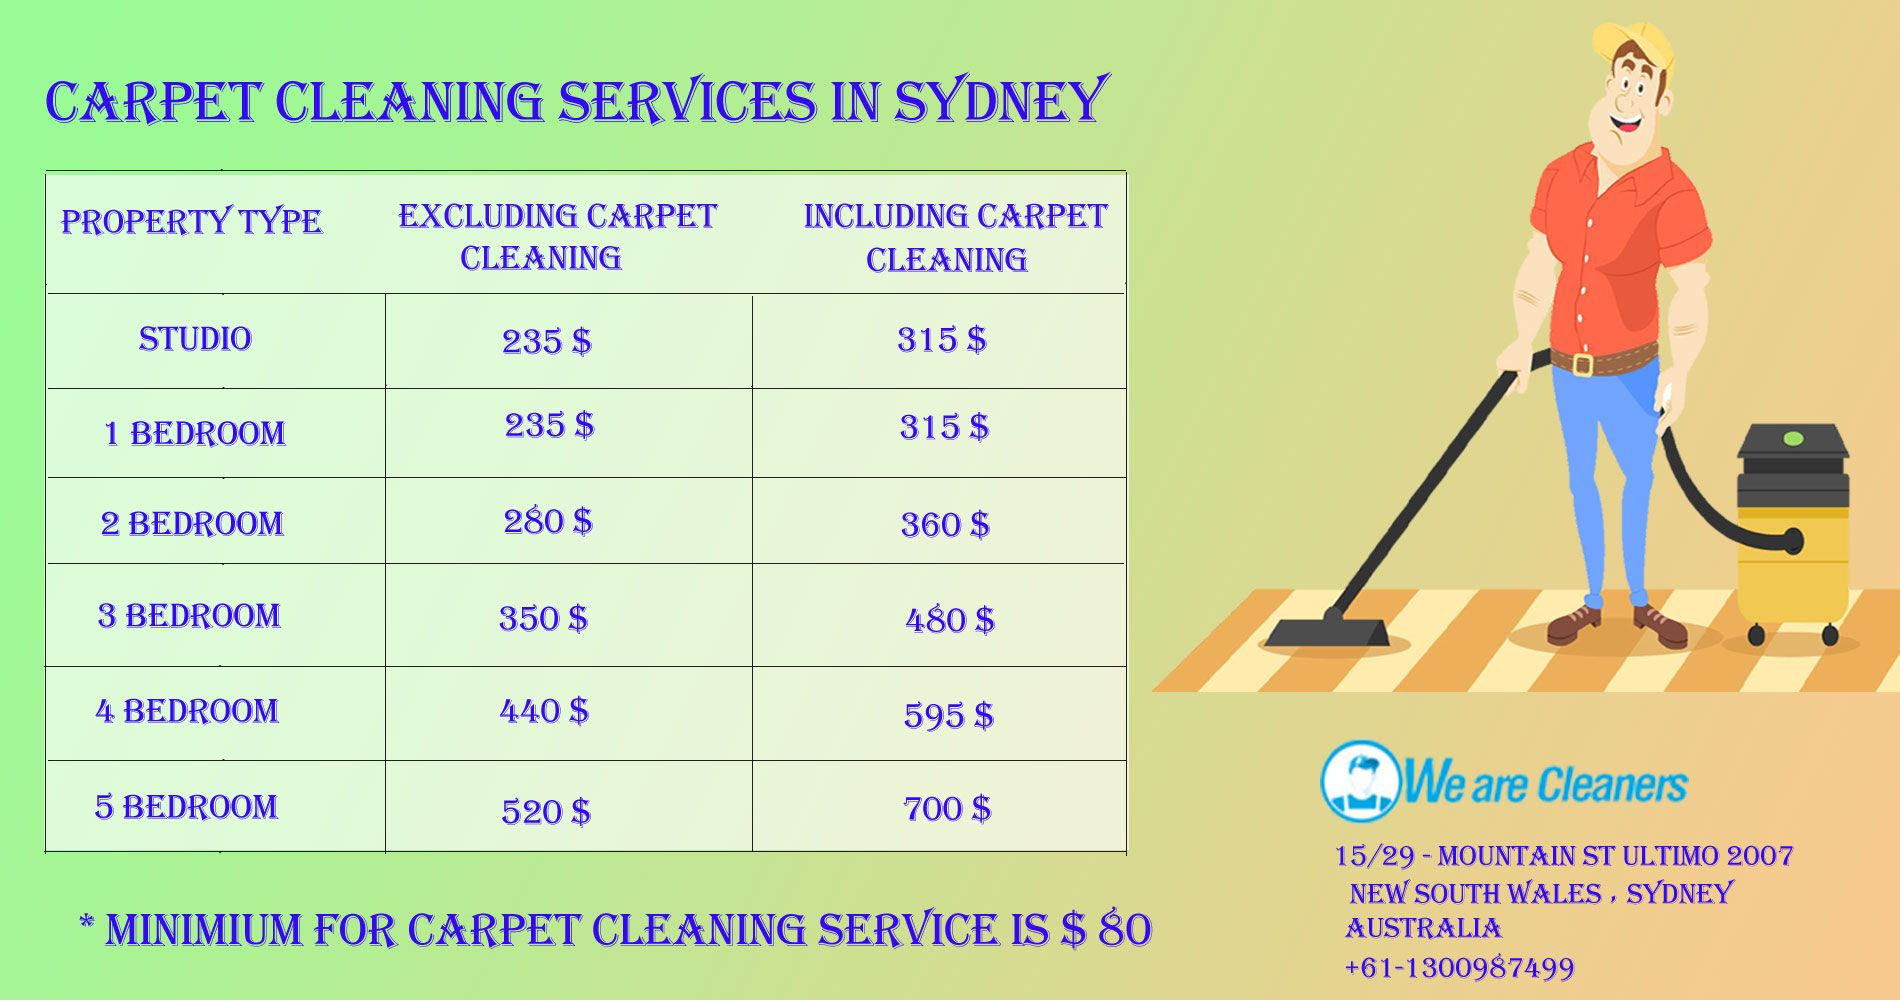 Check our price list for carpet cleaning services in